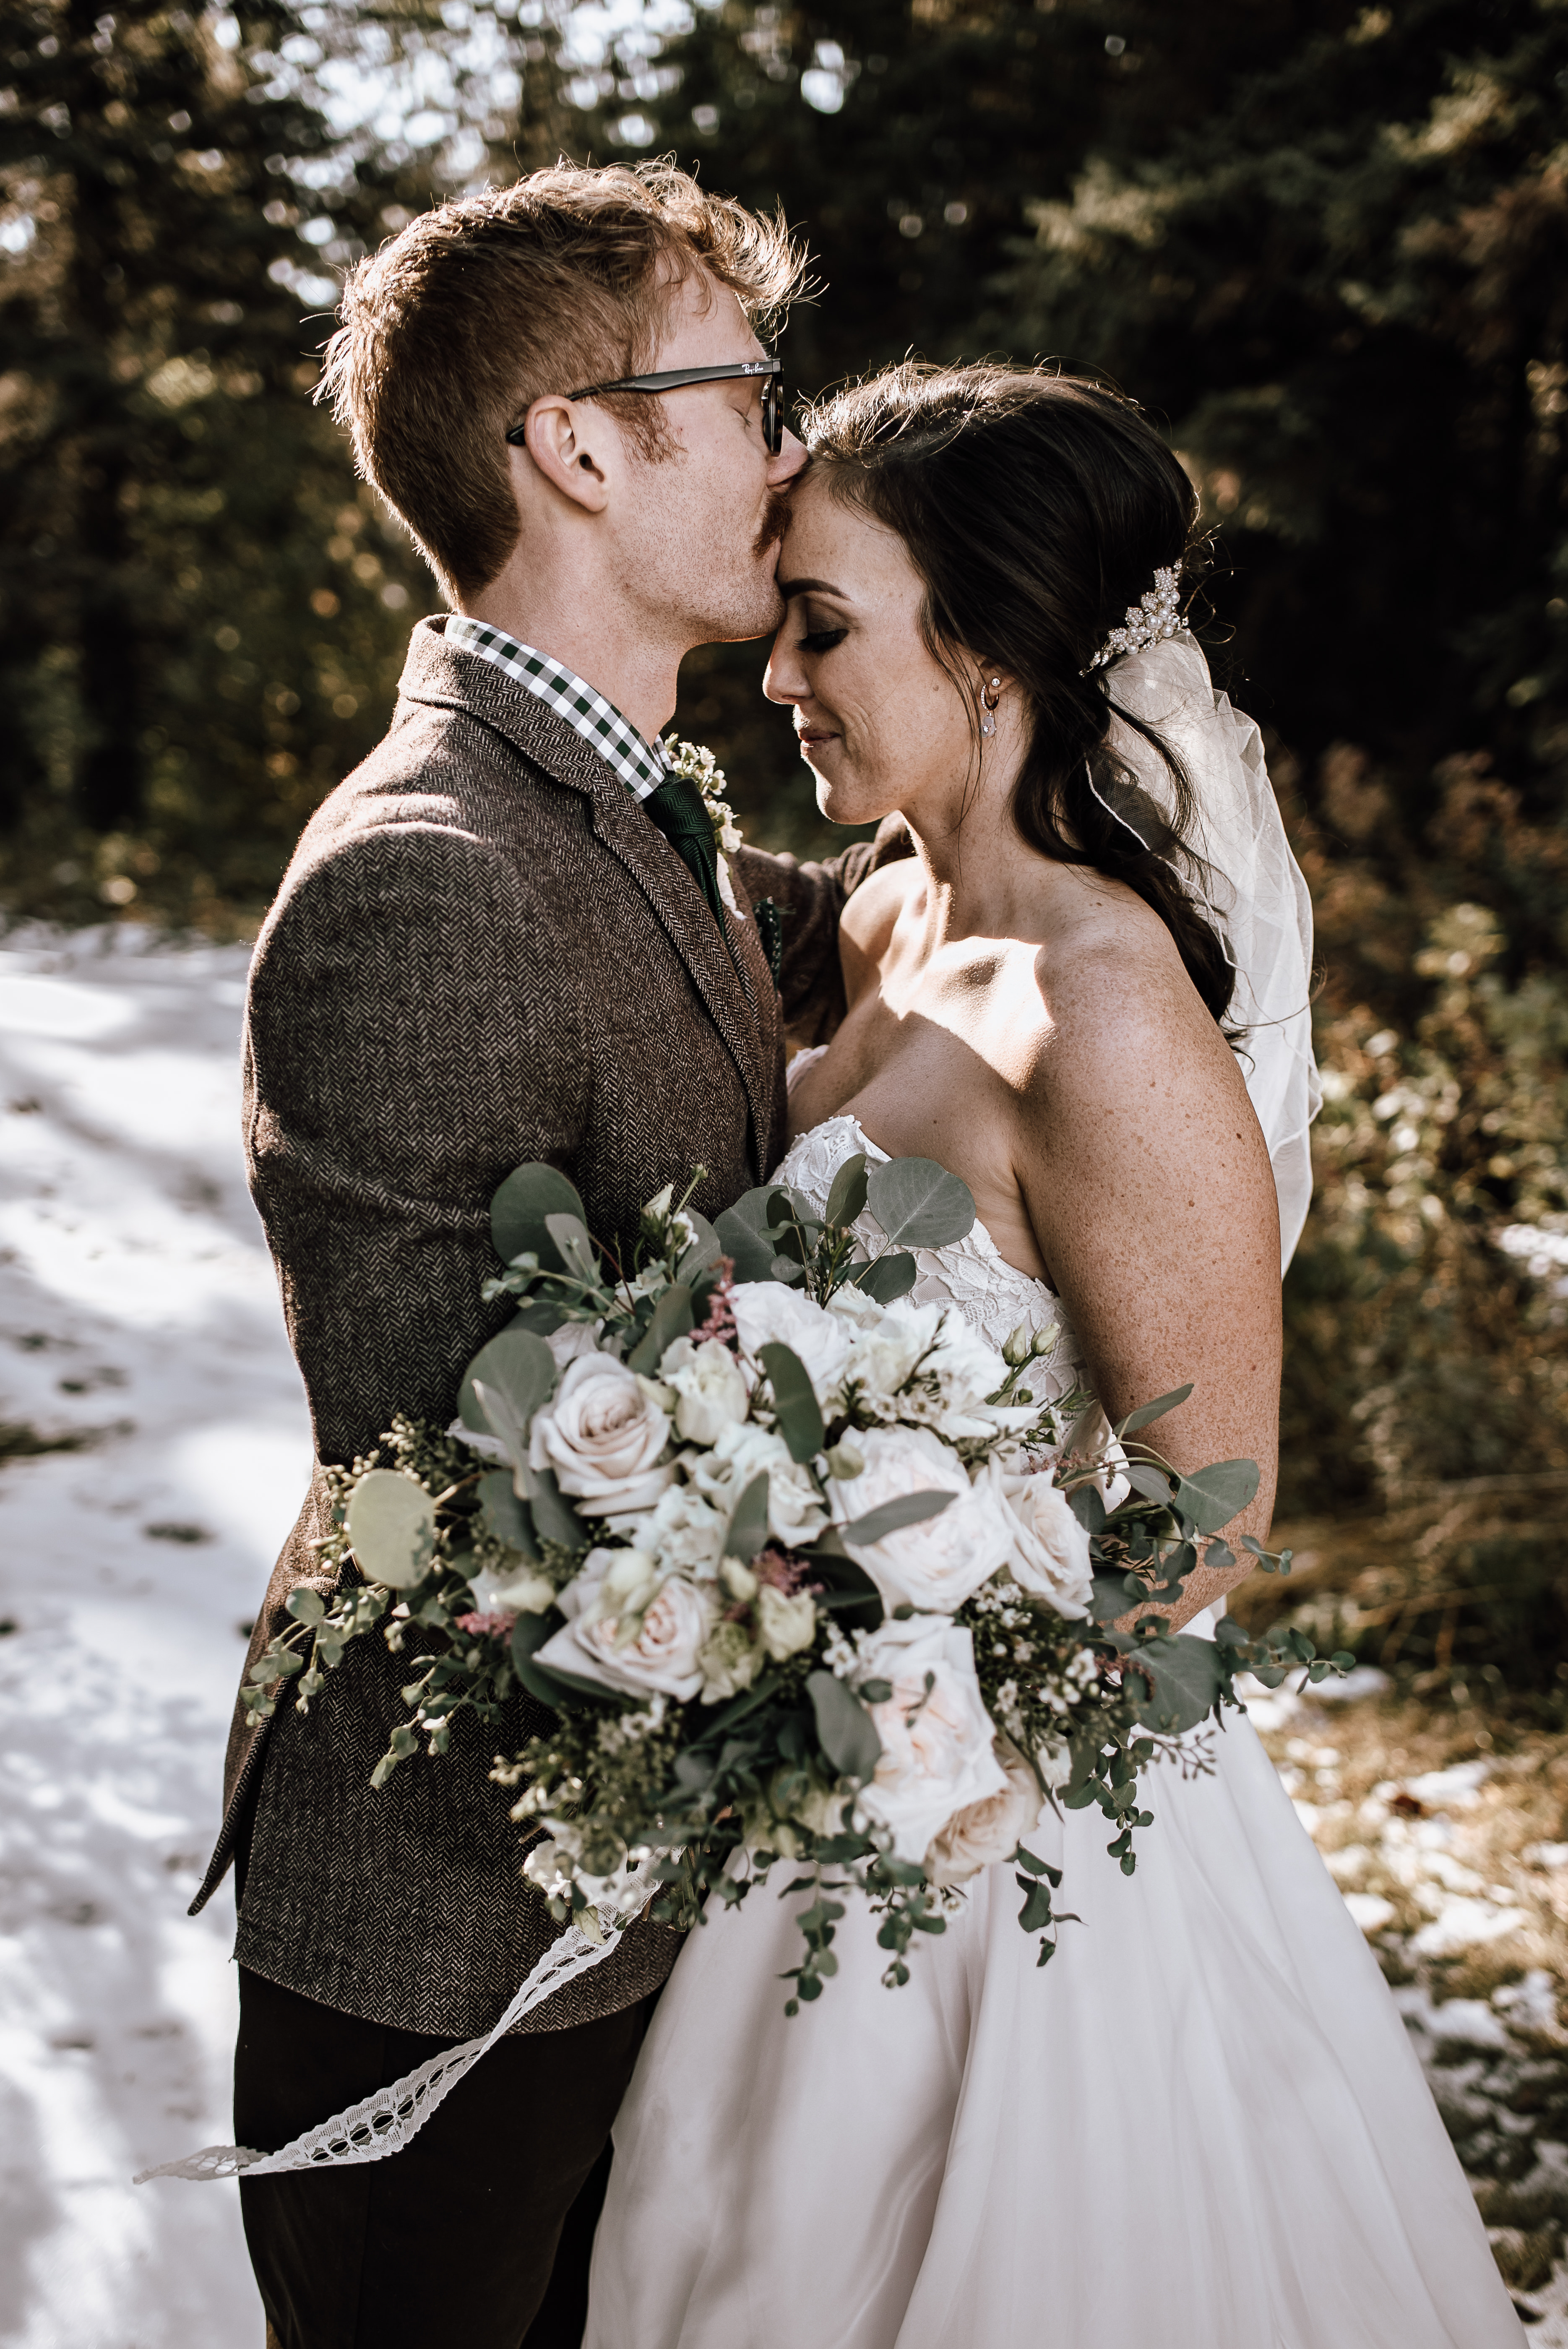 Groom kissing bride holding a white and blush bouquet with roses and eucalyptus